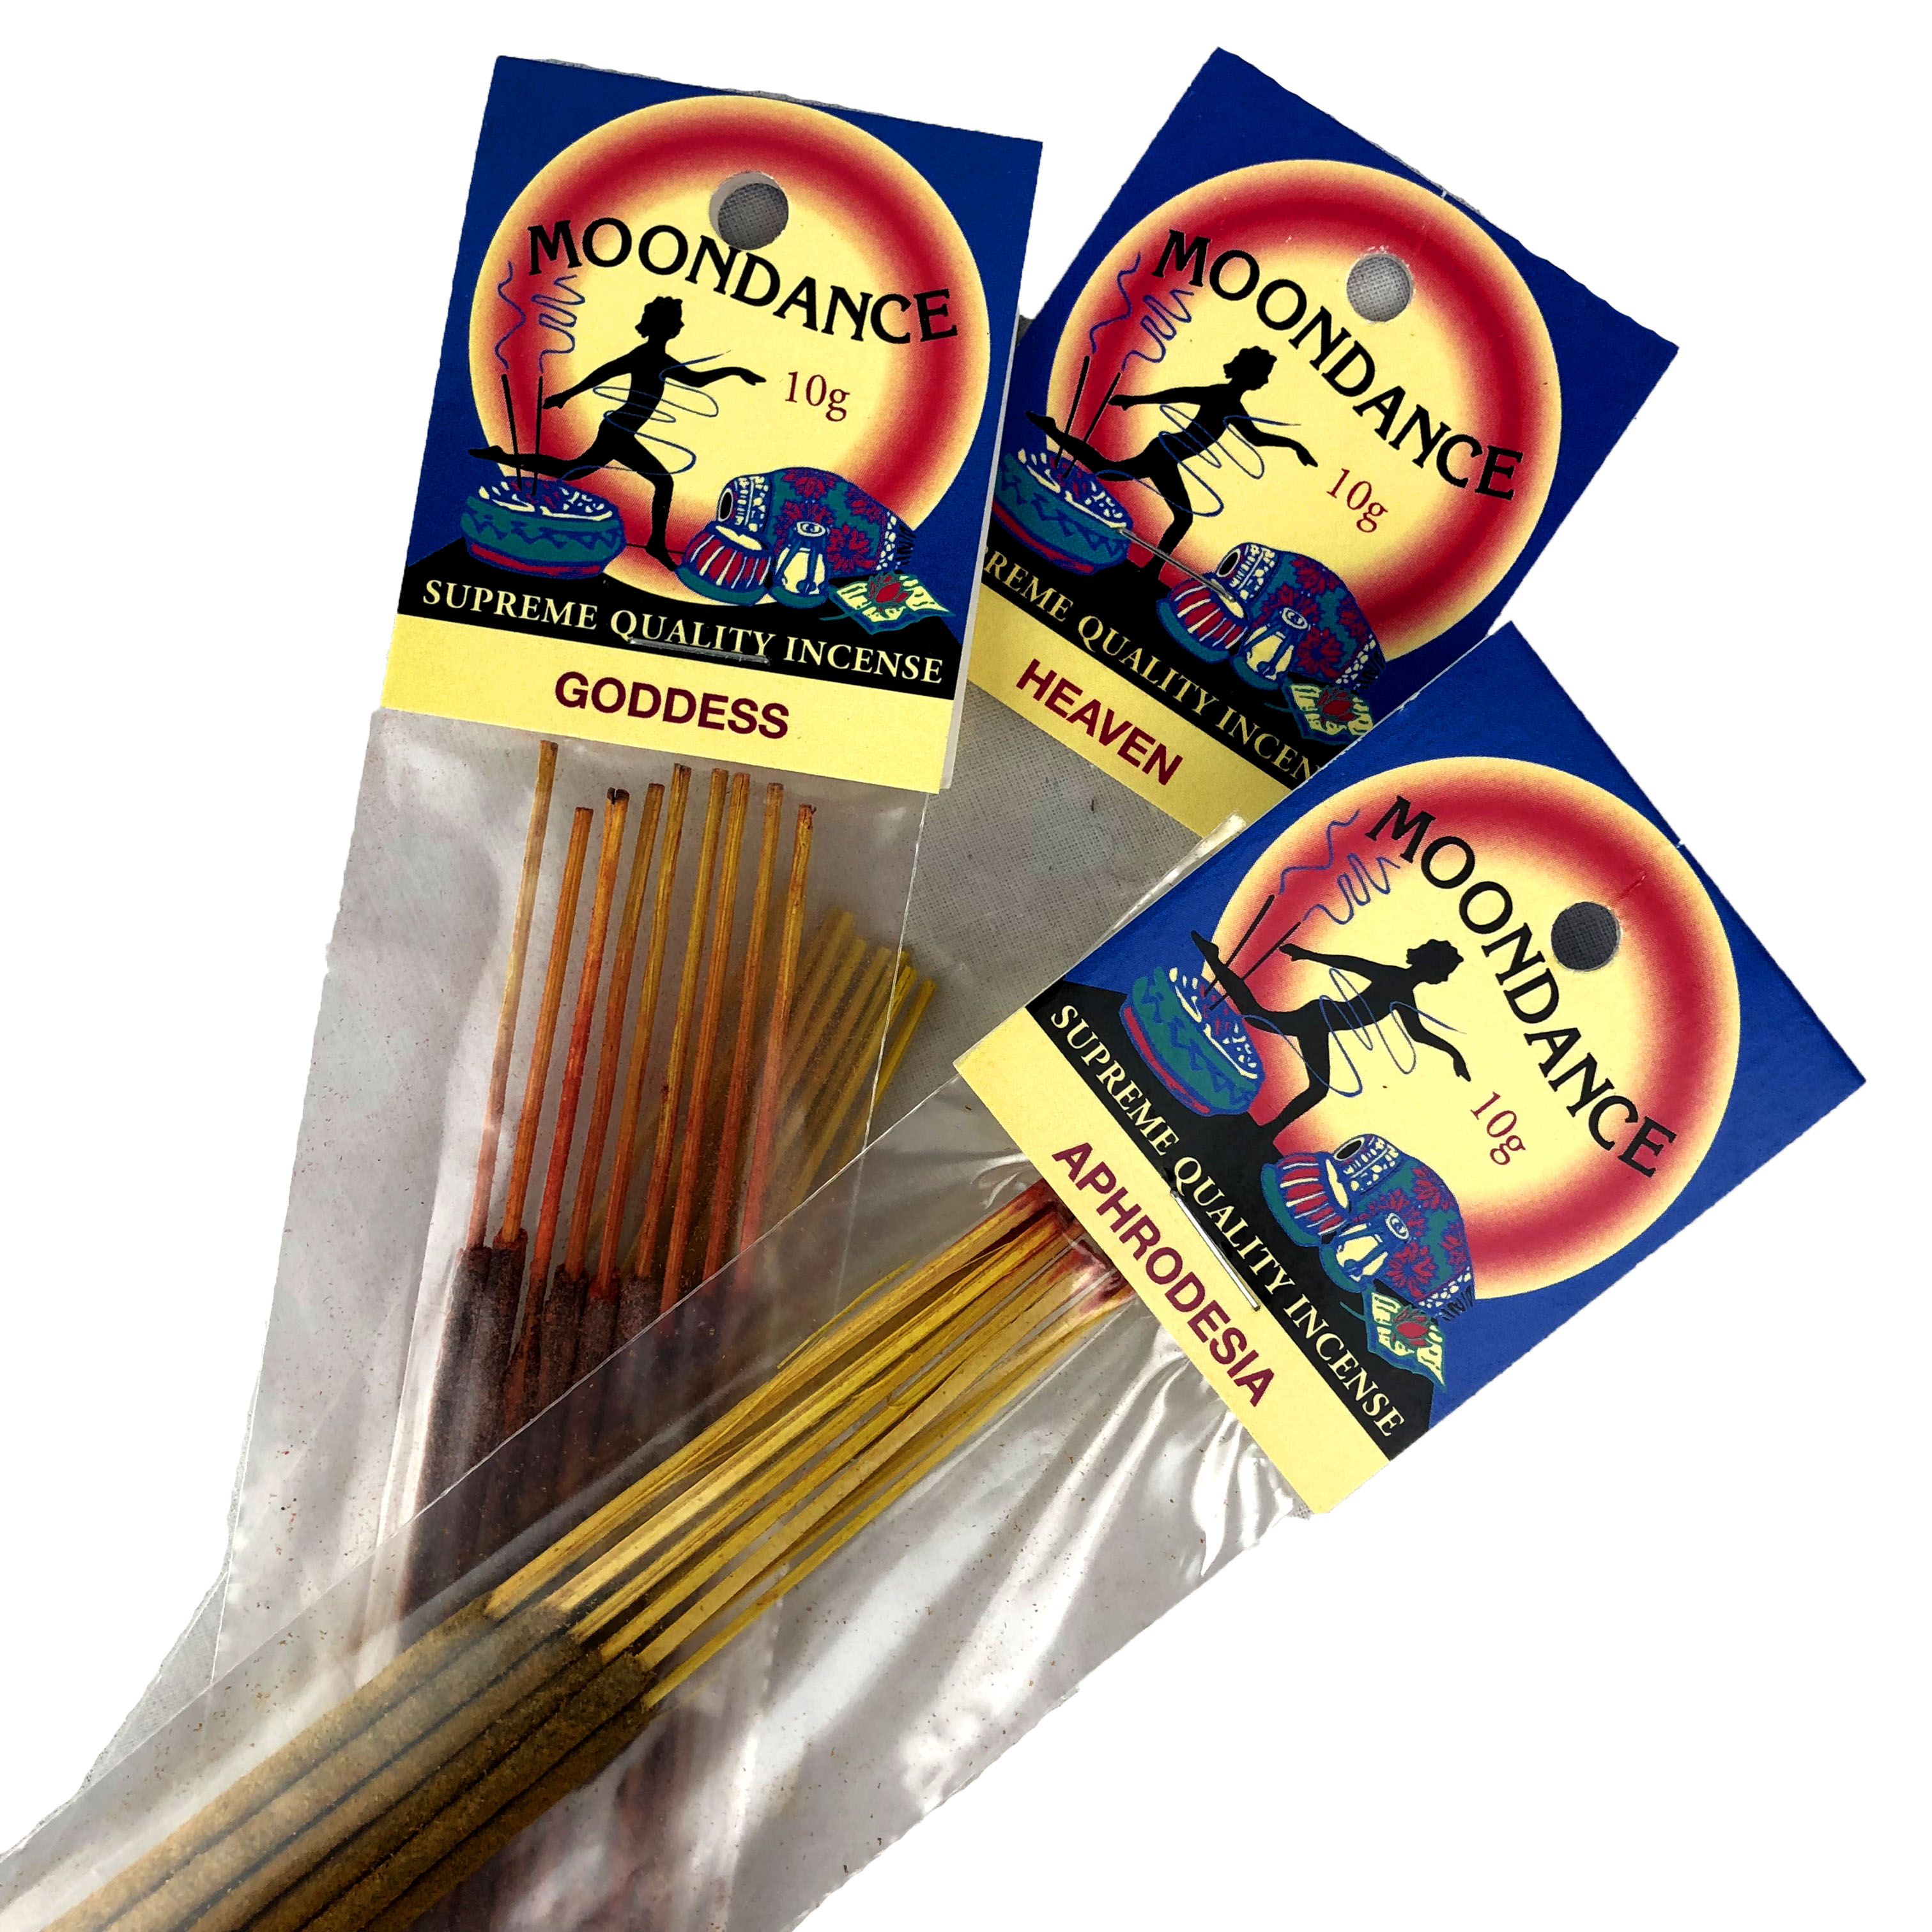 Moondance  Incense 10 g  (Min of 6 pkts) for FREE SHIPPING AUST ONLY